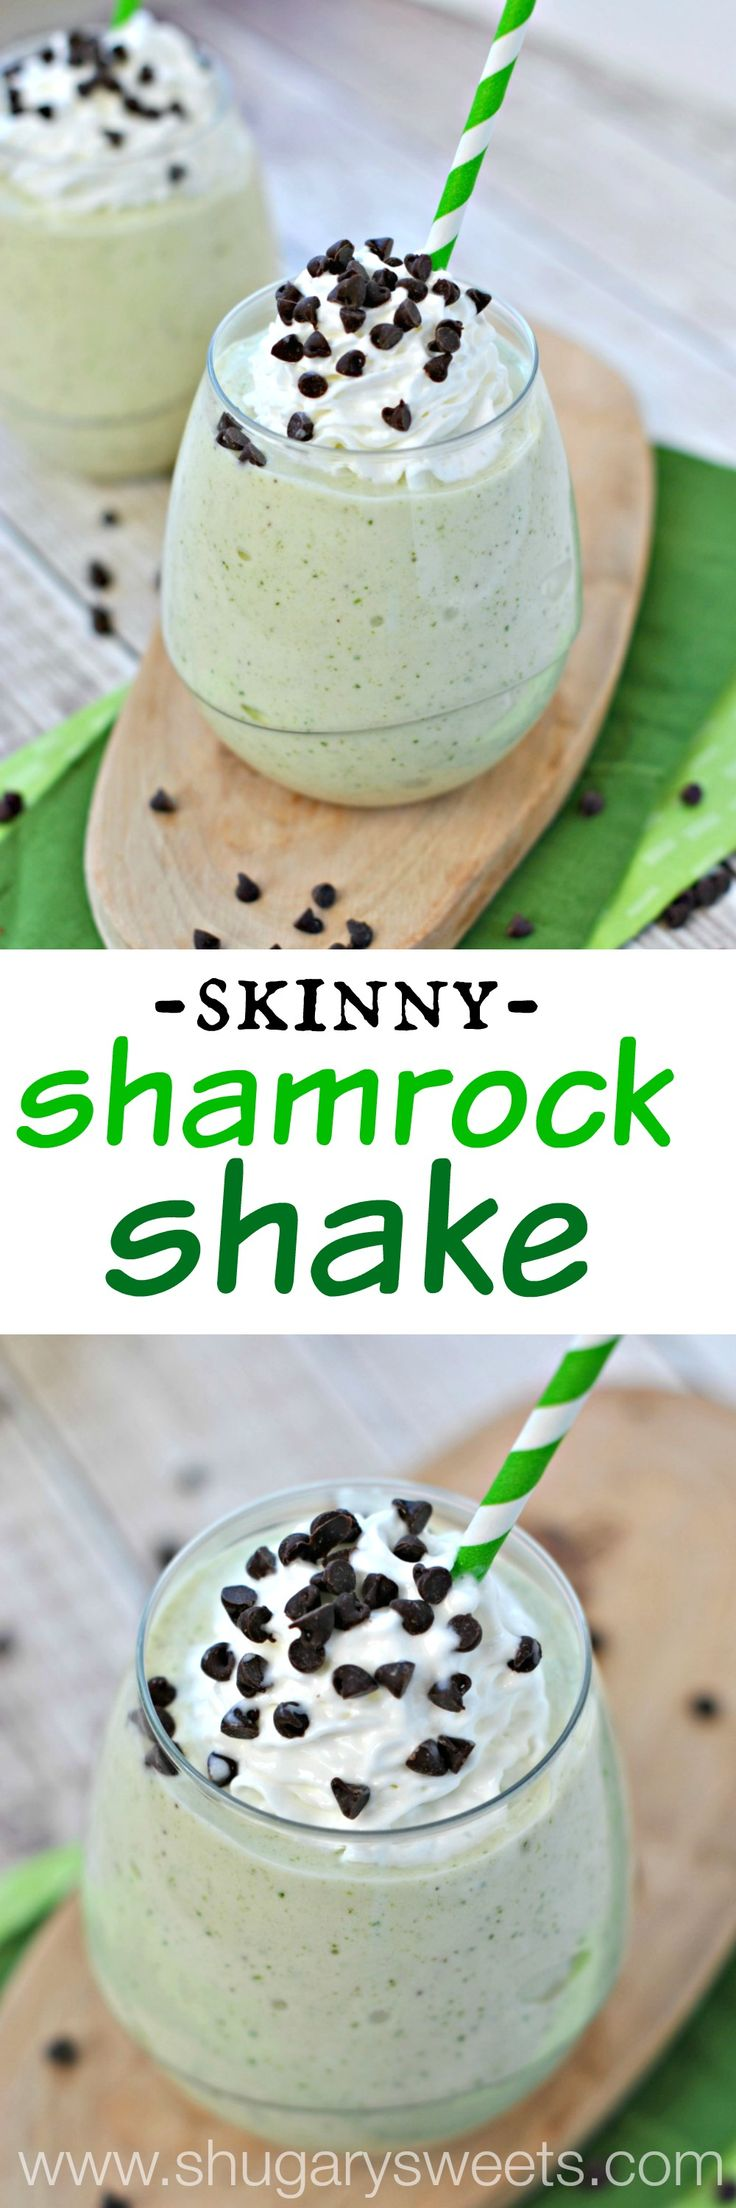 Skinny Shamrock Shake: made with frozen bananas, fat free milk, and mint! So easy and the perfect post workout treat!